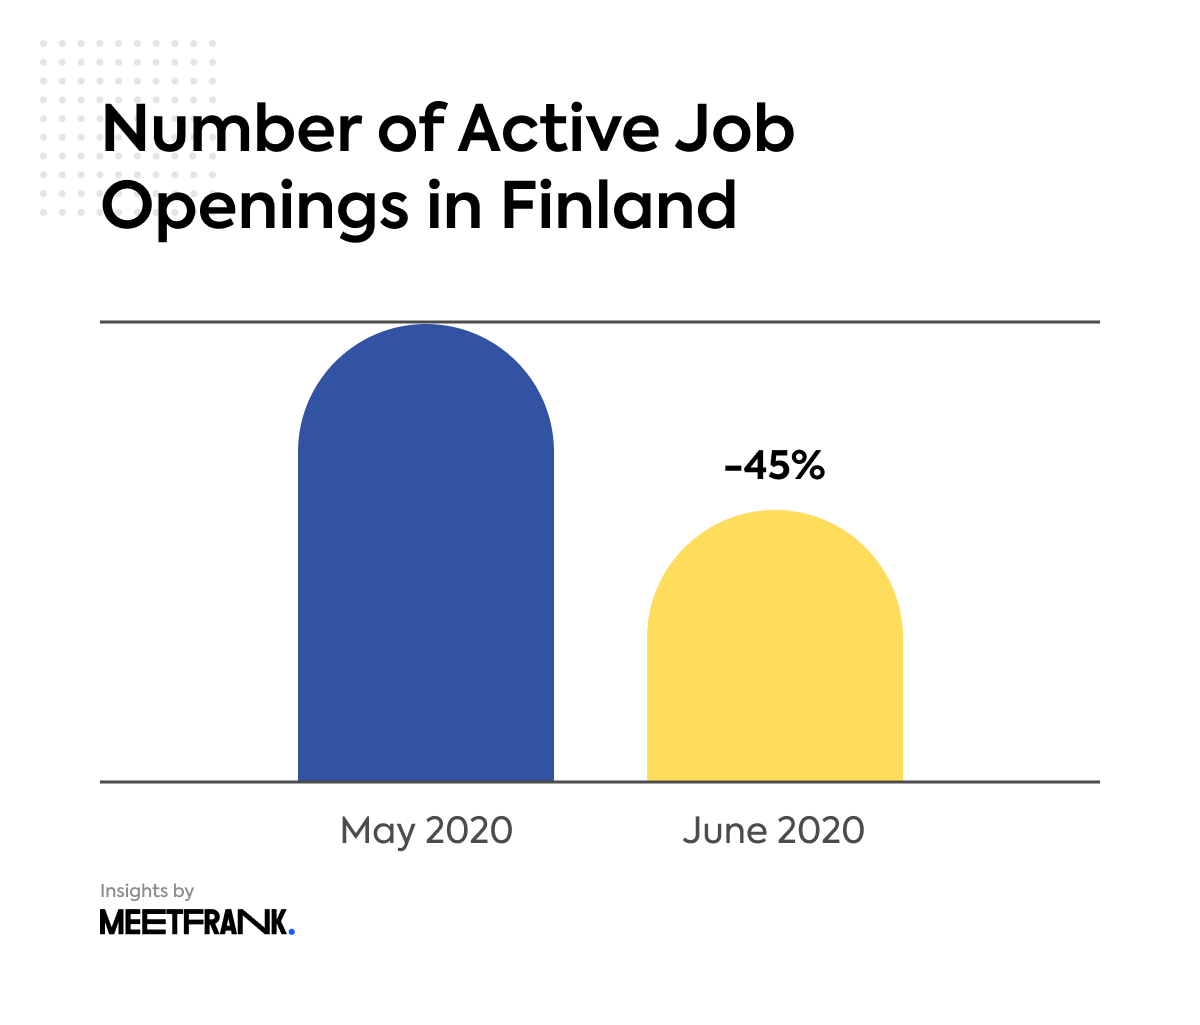 active job openings in Finland